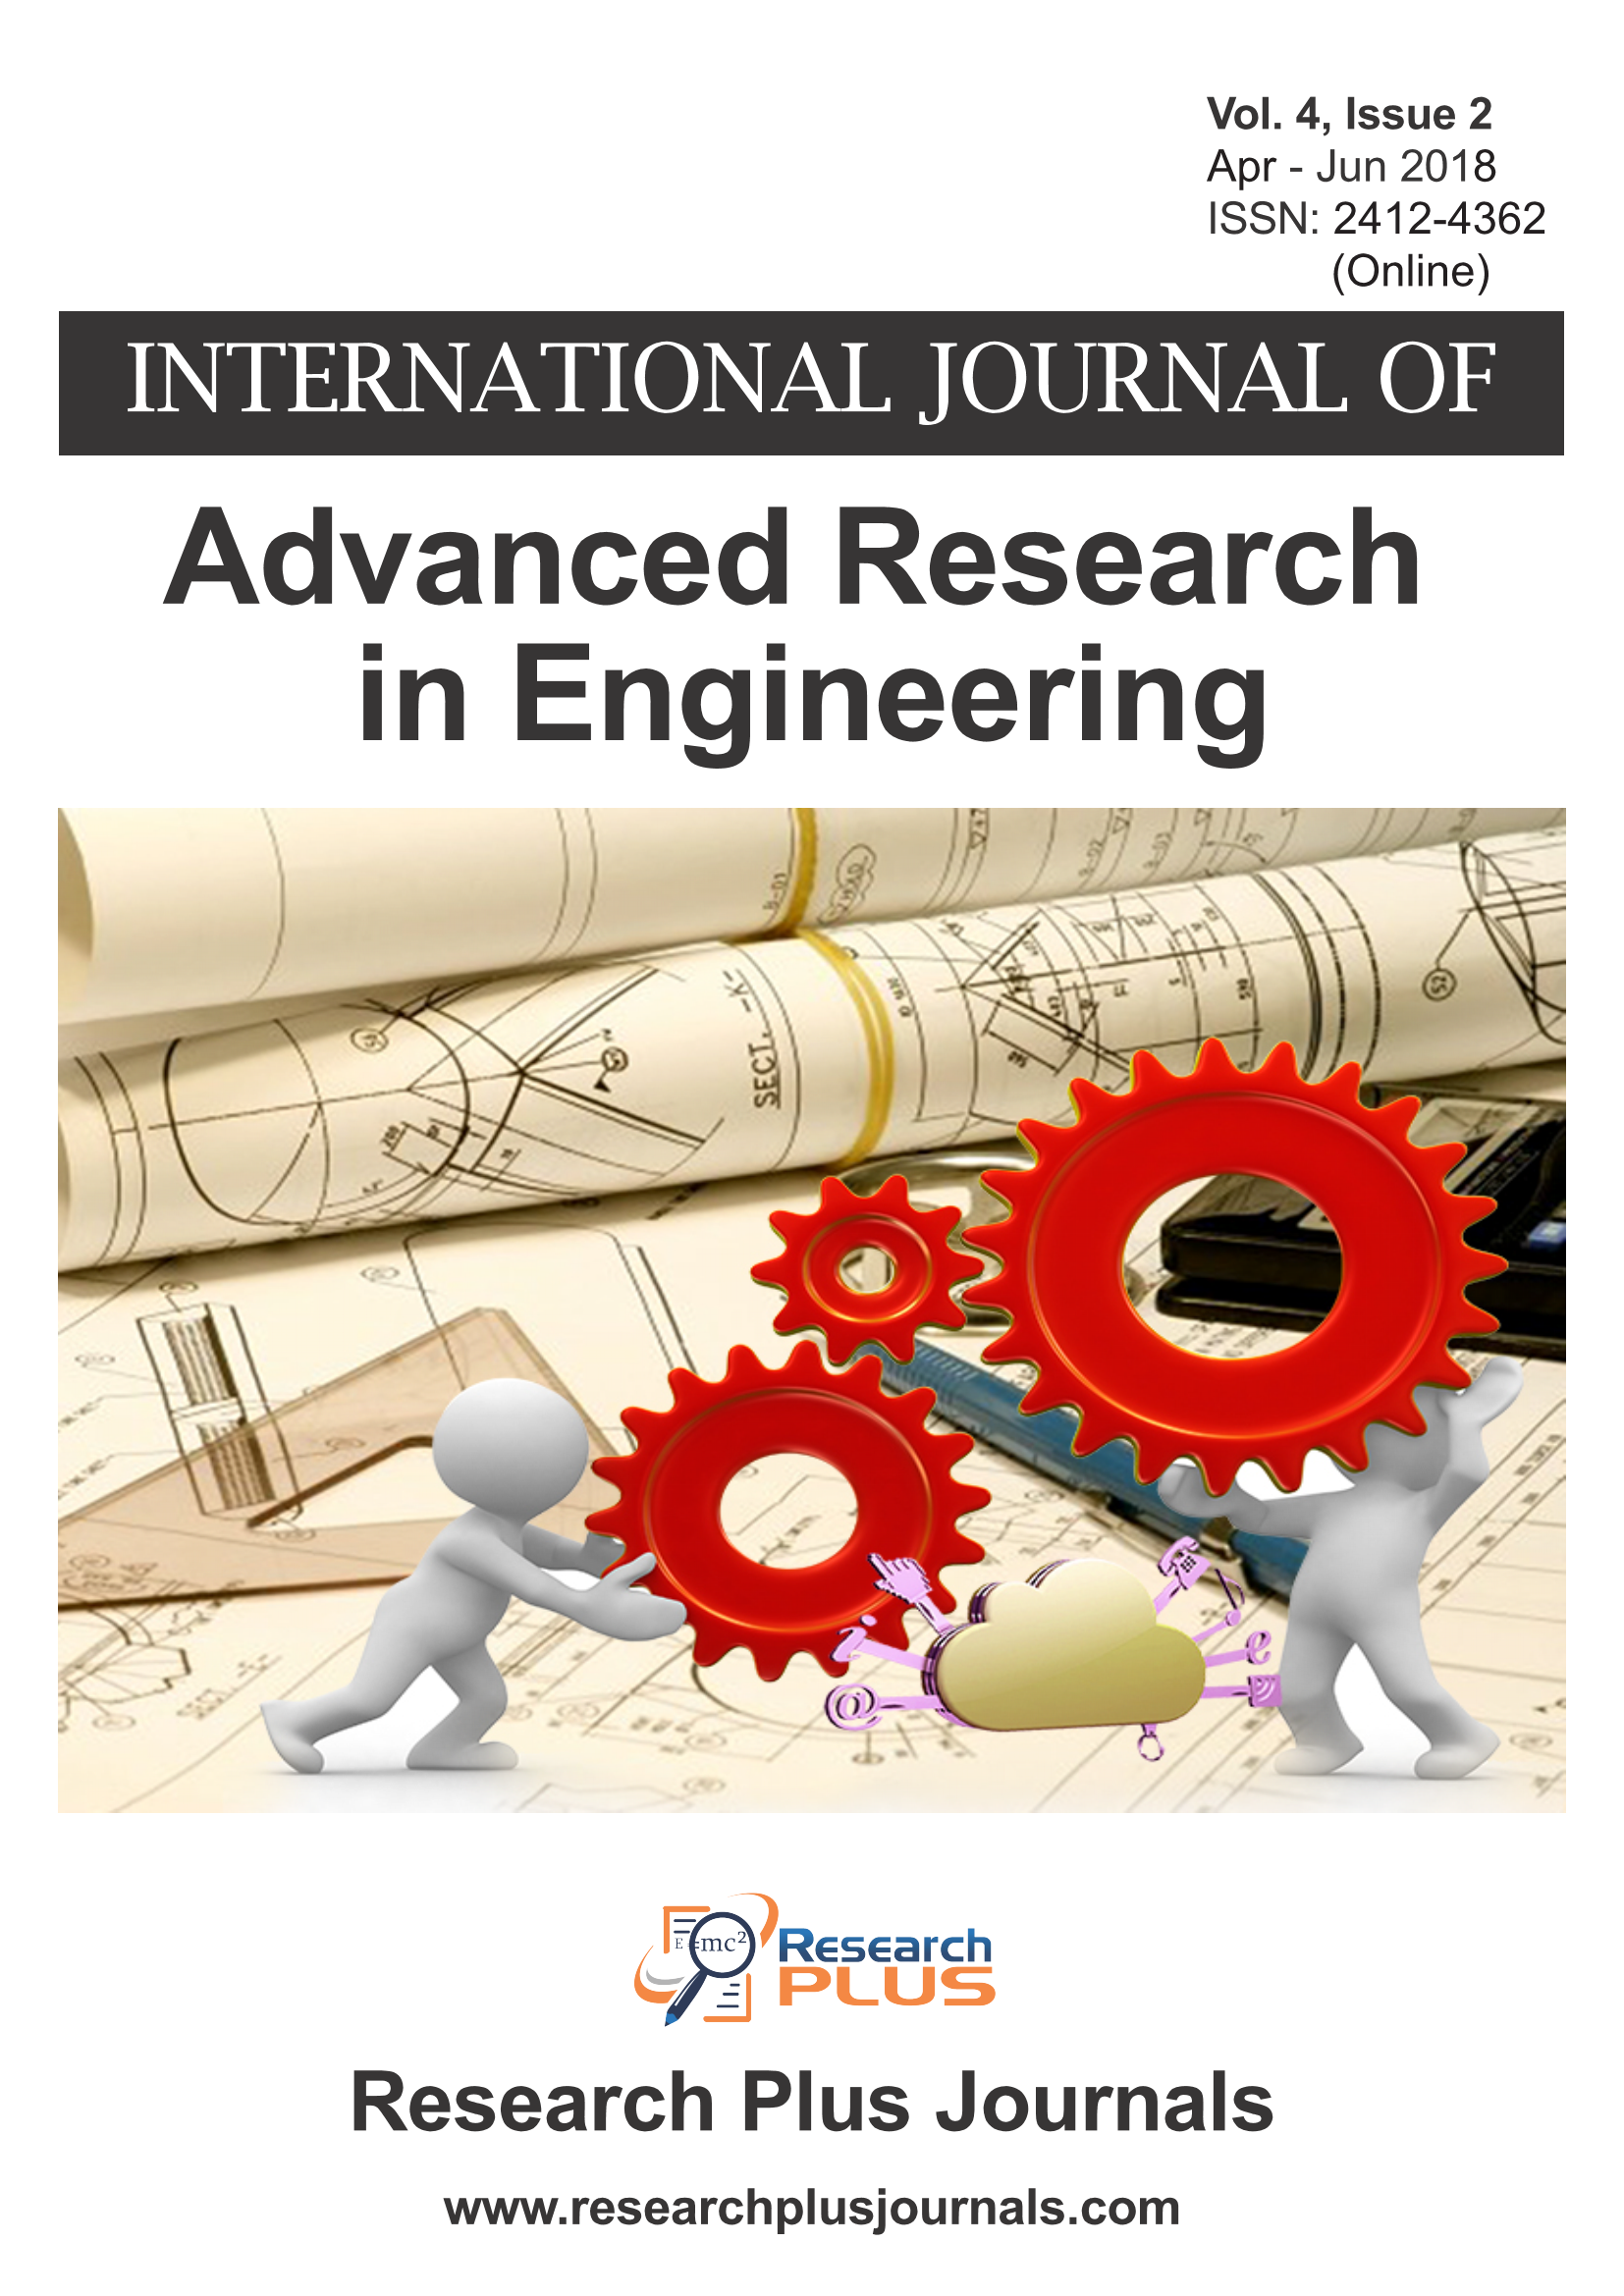 Volume 4, Issue 2, International Journal of Advanced Research in Engineering (IJARE)  (Online ISSN 2412-4362)